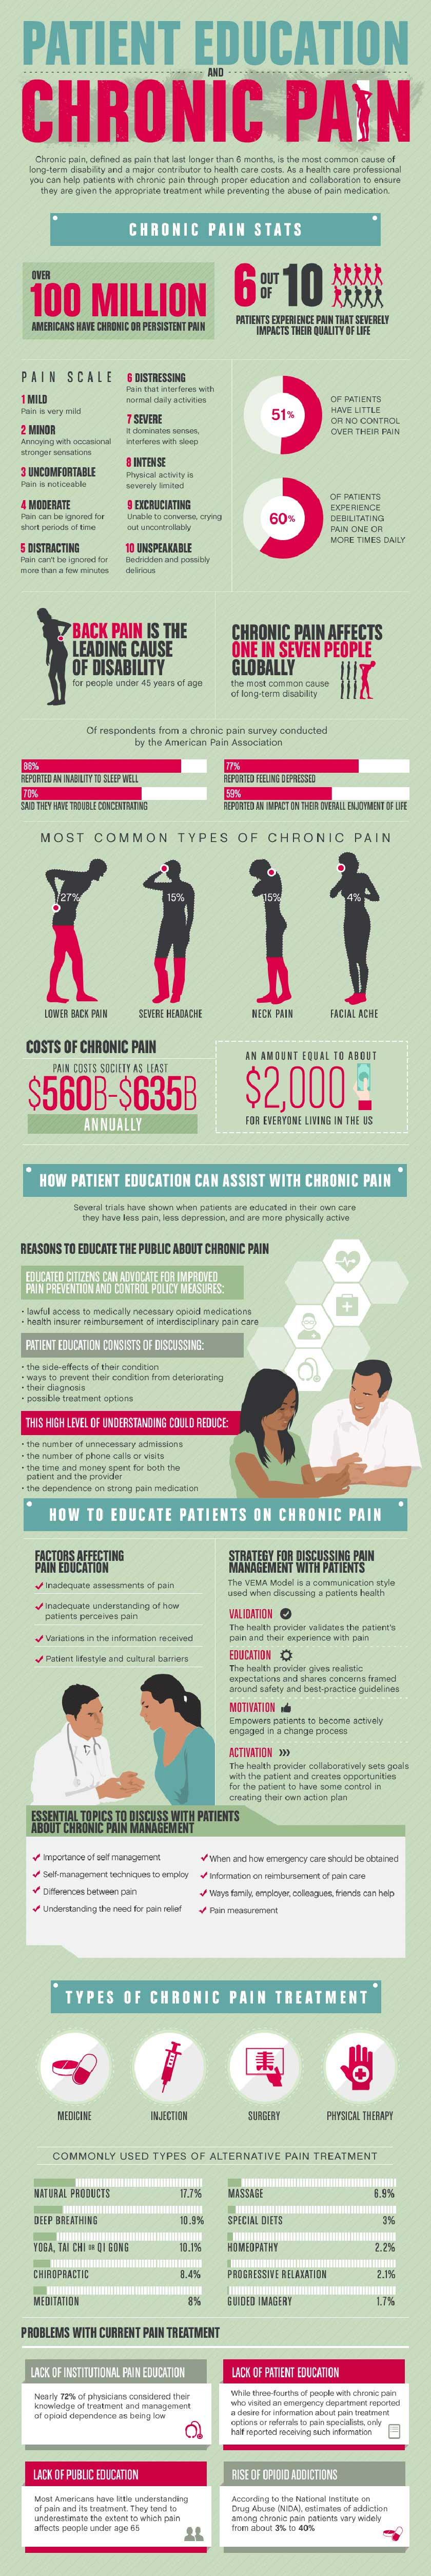 Patient Education and Chronic Pain